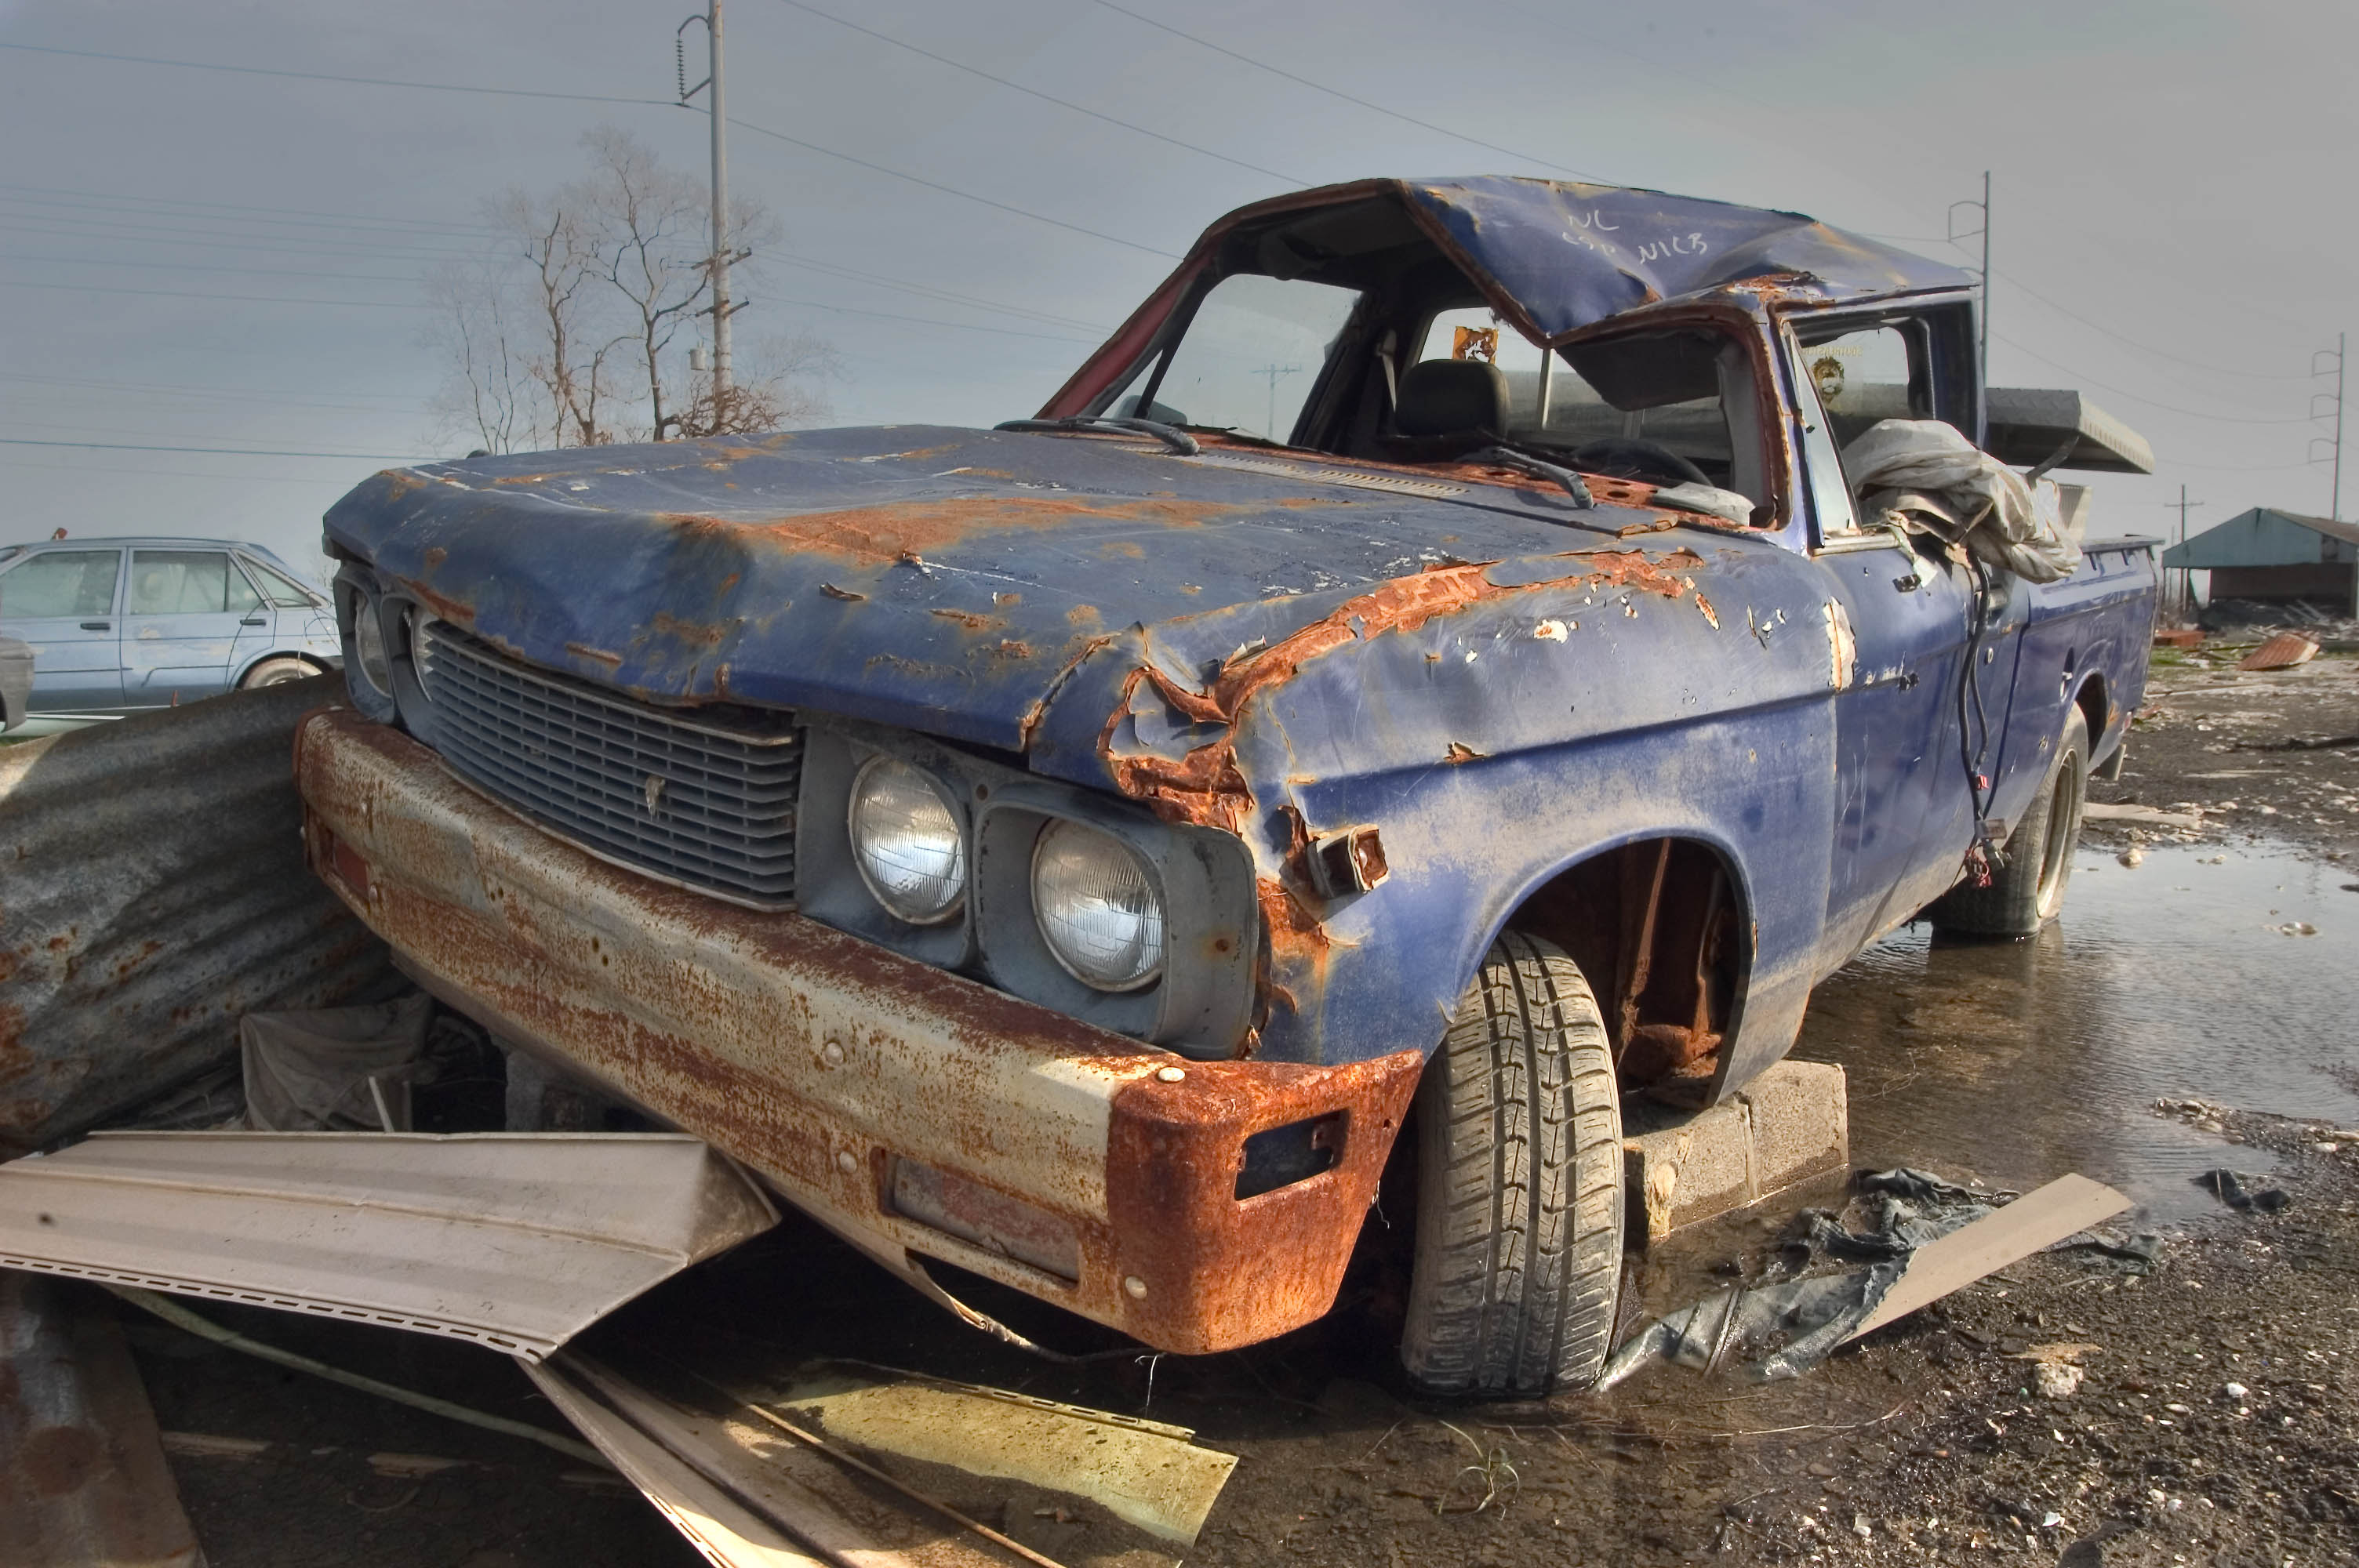 Things we can do with Wrecked cars - Sell car for cash in Florida | Sellthecars